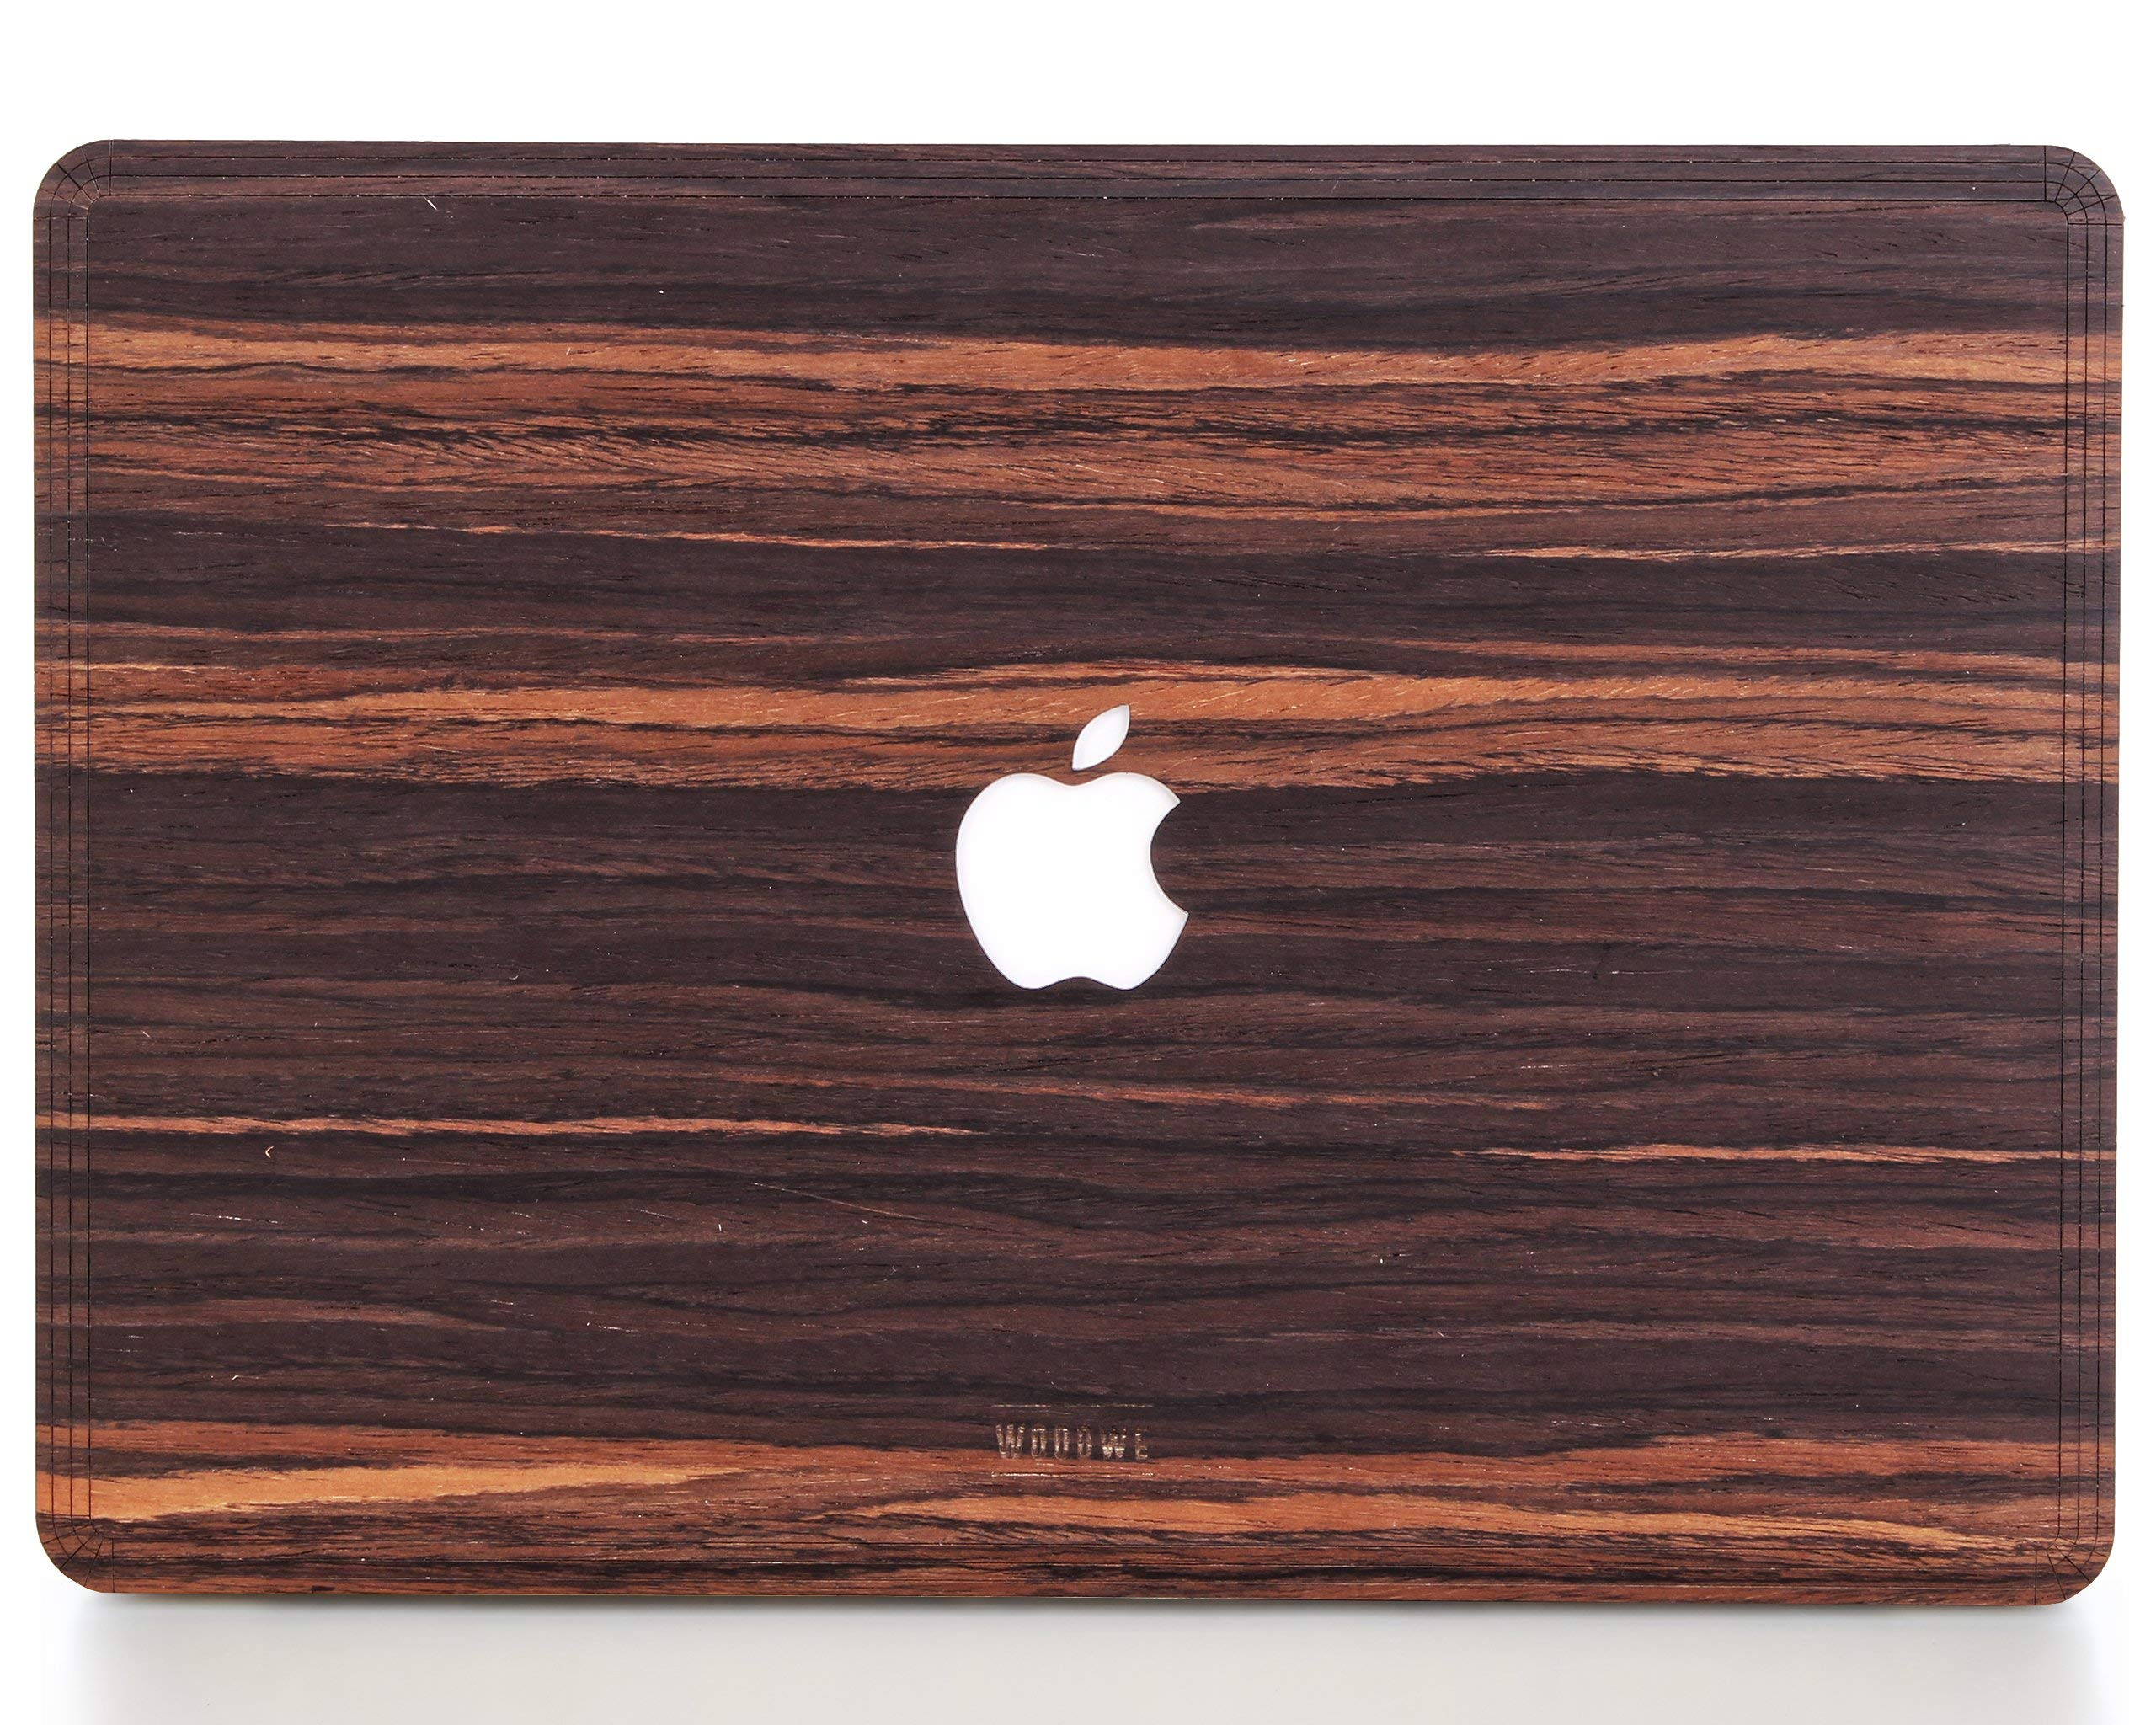 WOODWE Real Wood MacBook Skin for Mac Pro 13 inch with/Without Touch Bar | Model: A1706/A1708/A1989; Late 2016 - Mid 2018 | Natural Ebony | TOP&Bottom